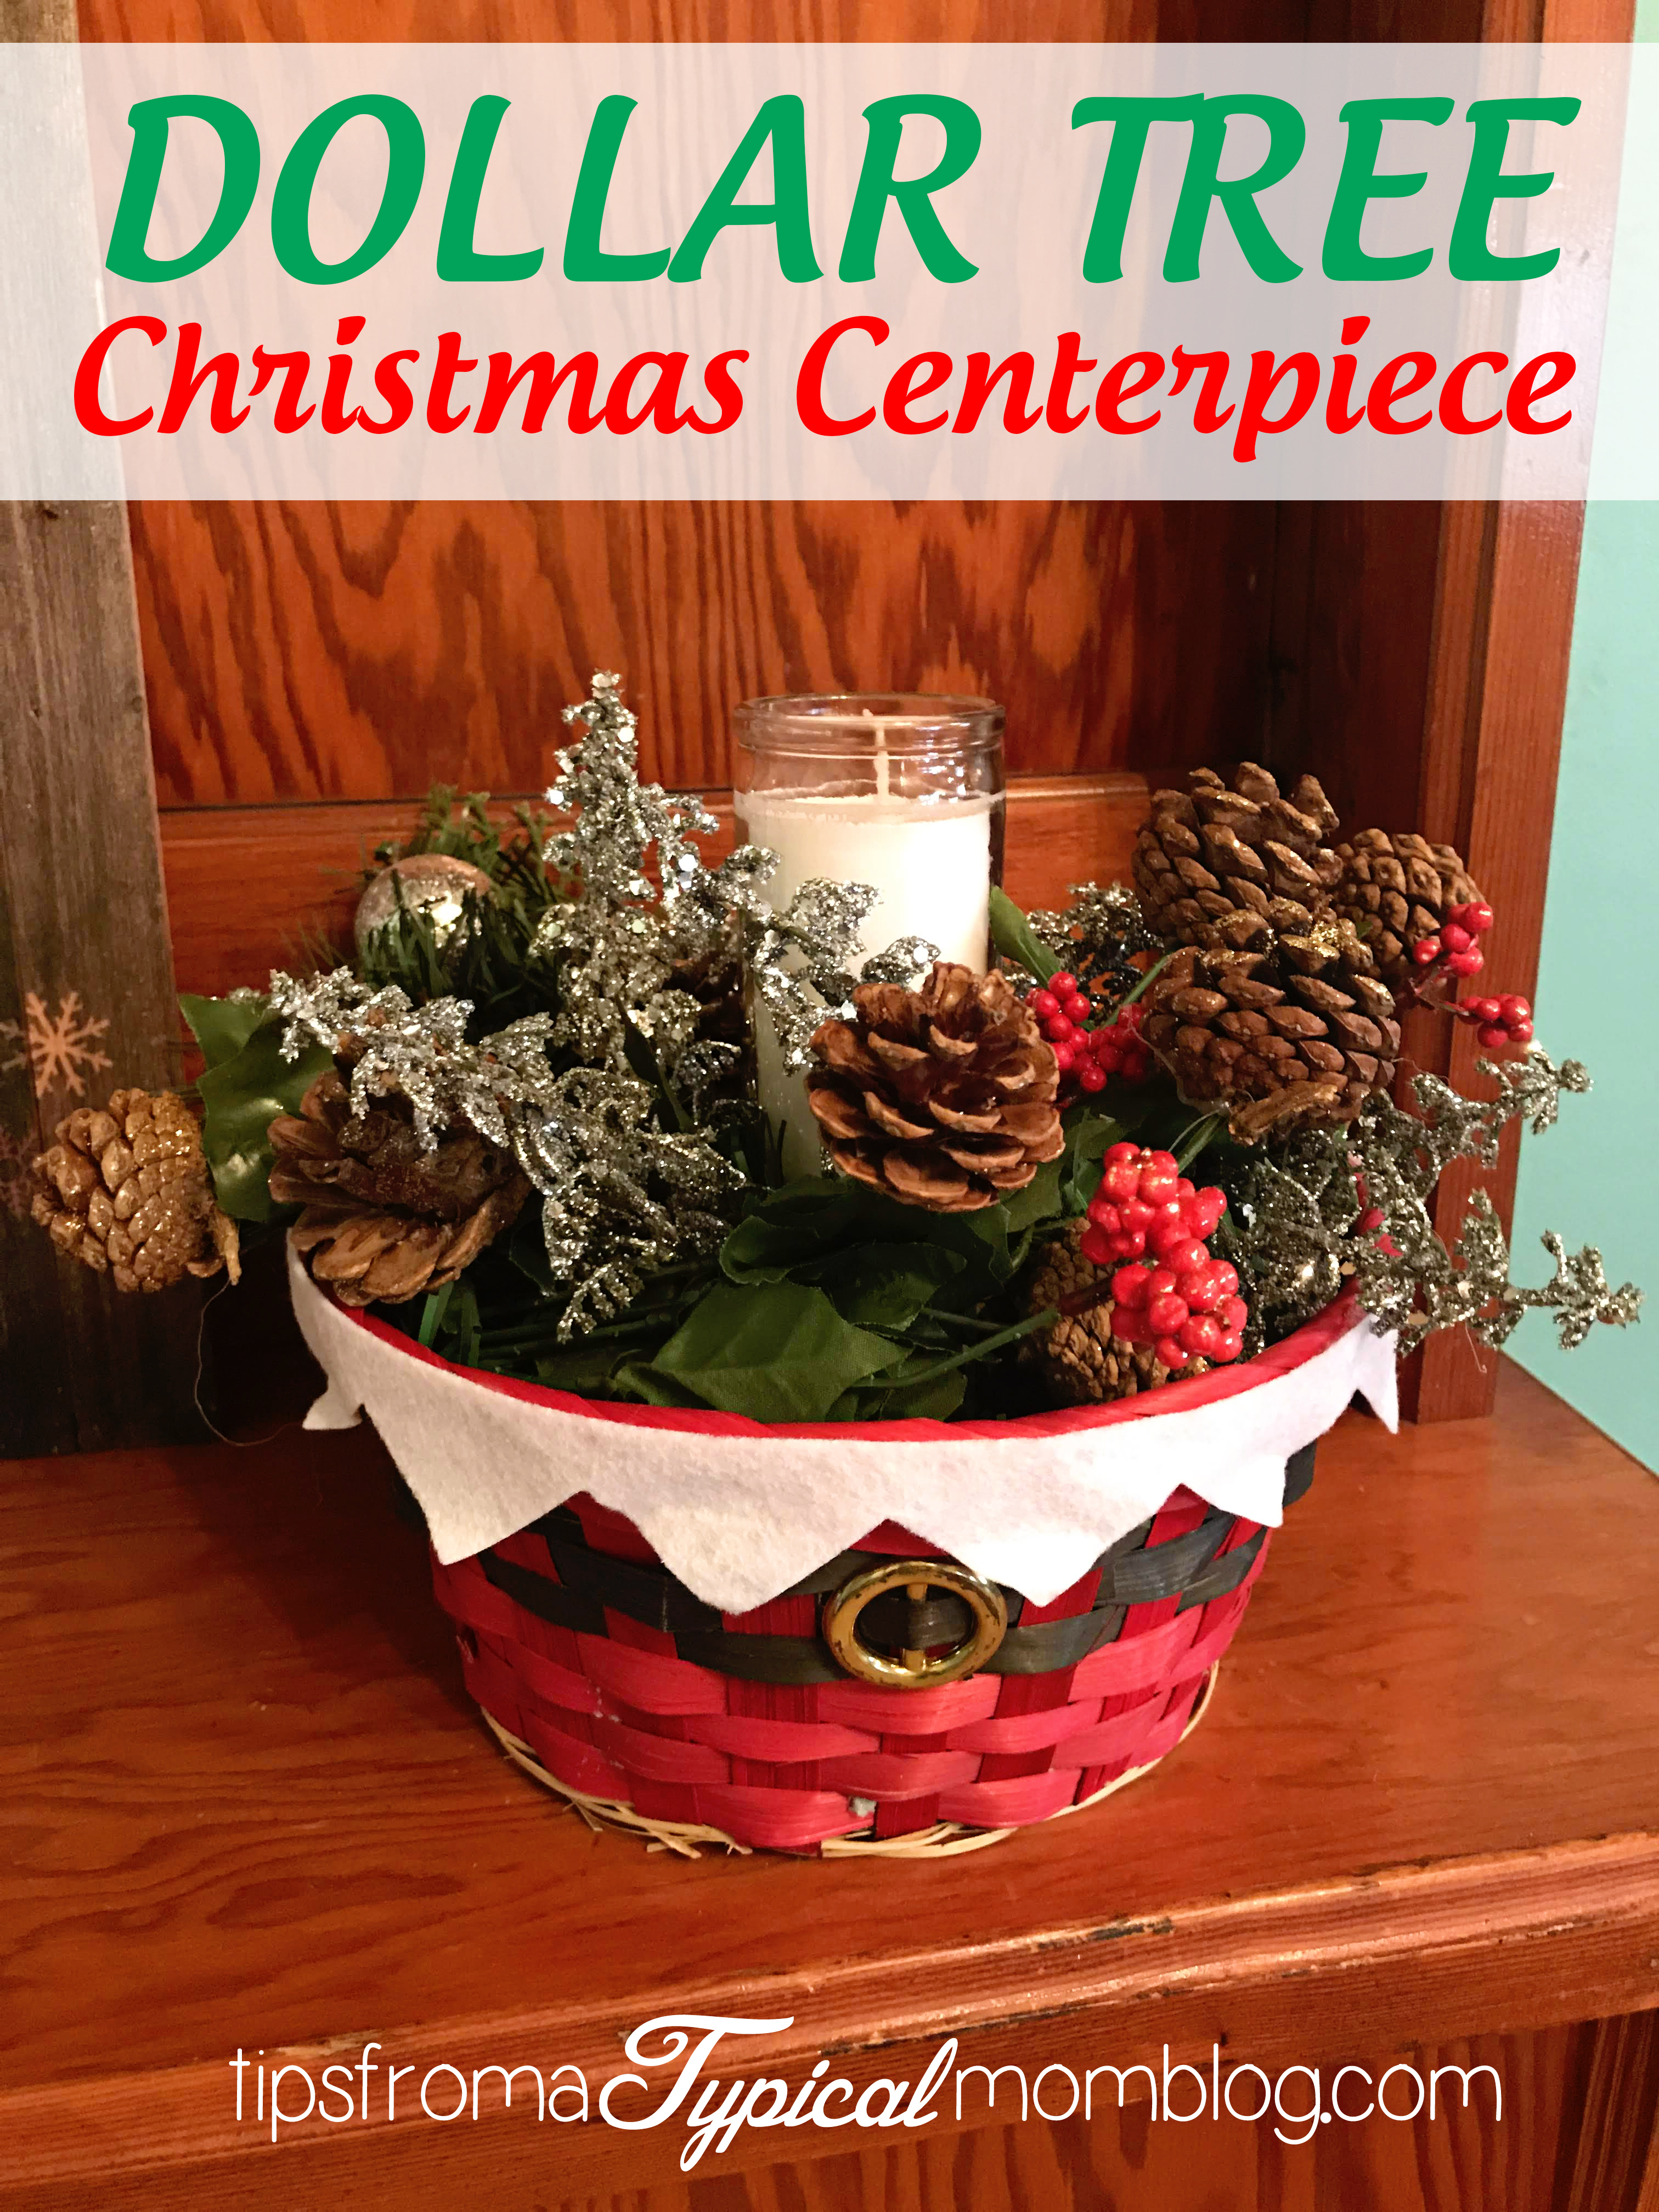 Dollar Tree 8 Christmas Table Centerpiece Craft Tutorial Other Dollar Tree Crafts Tips From A Typical Mom